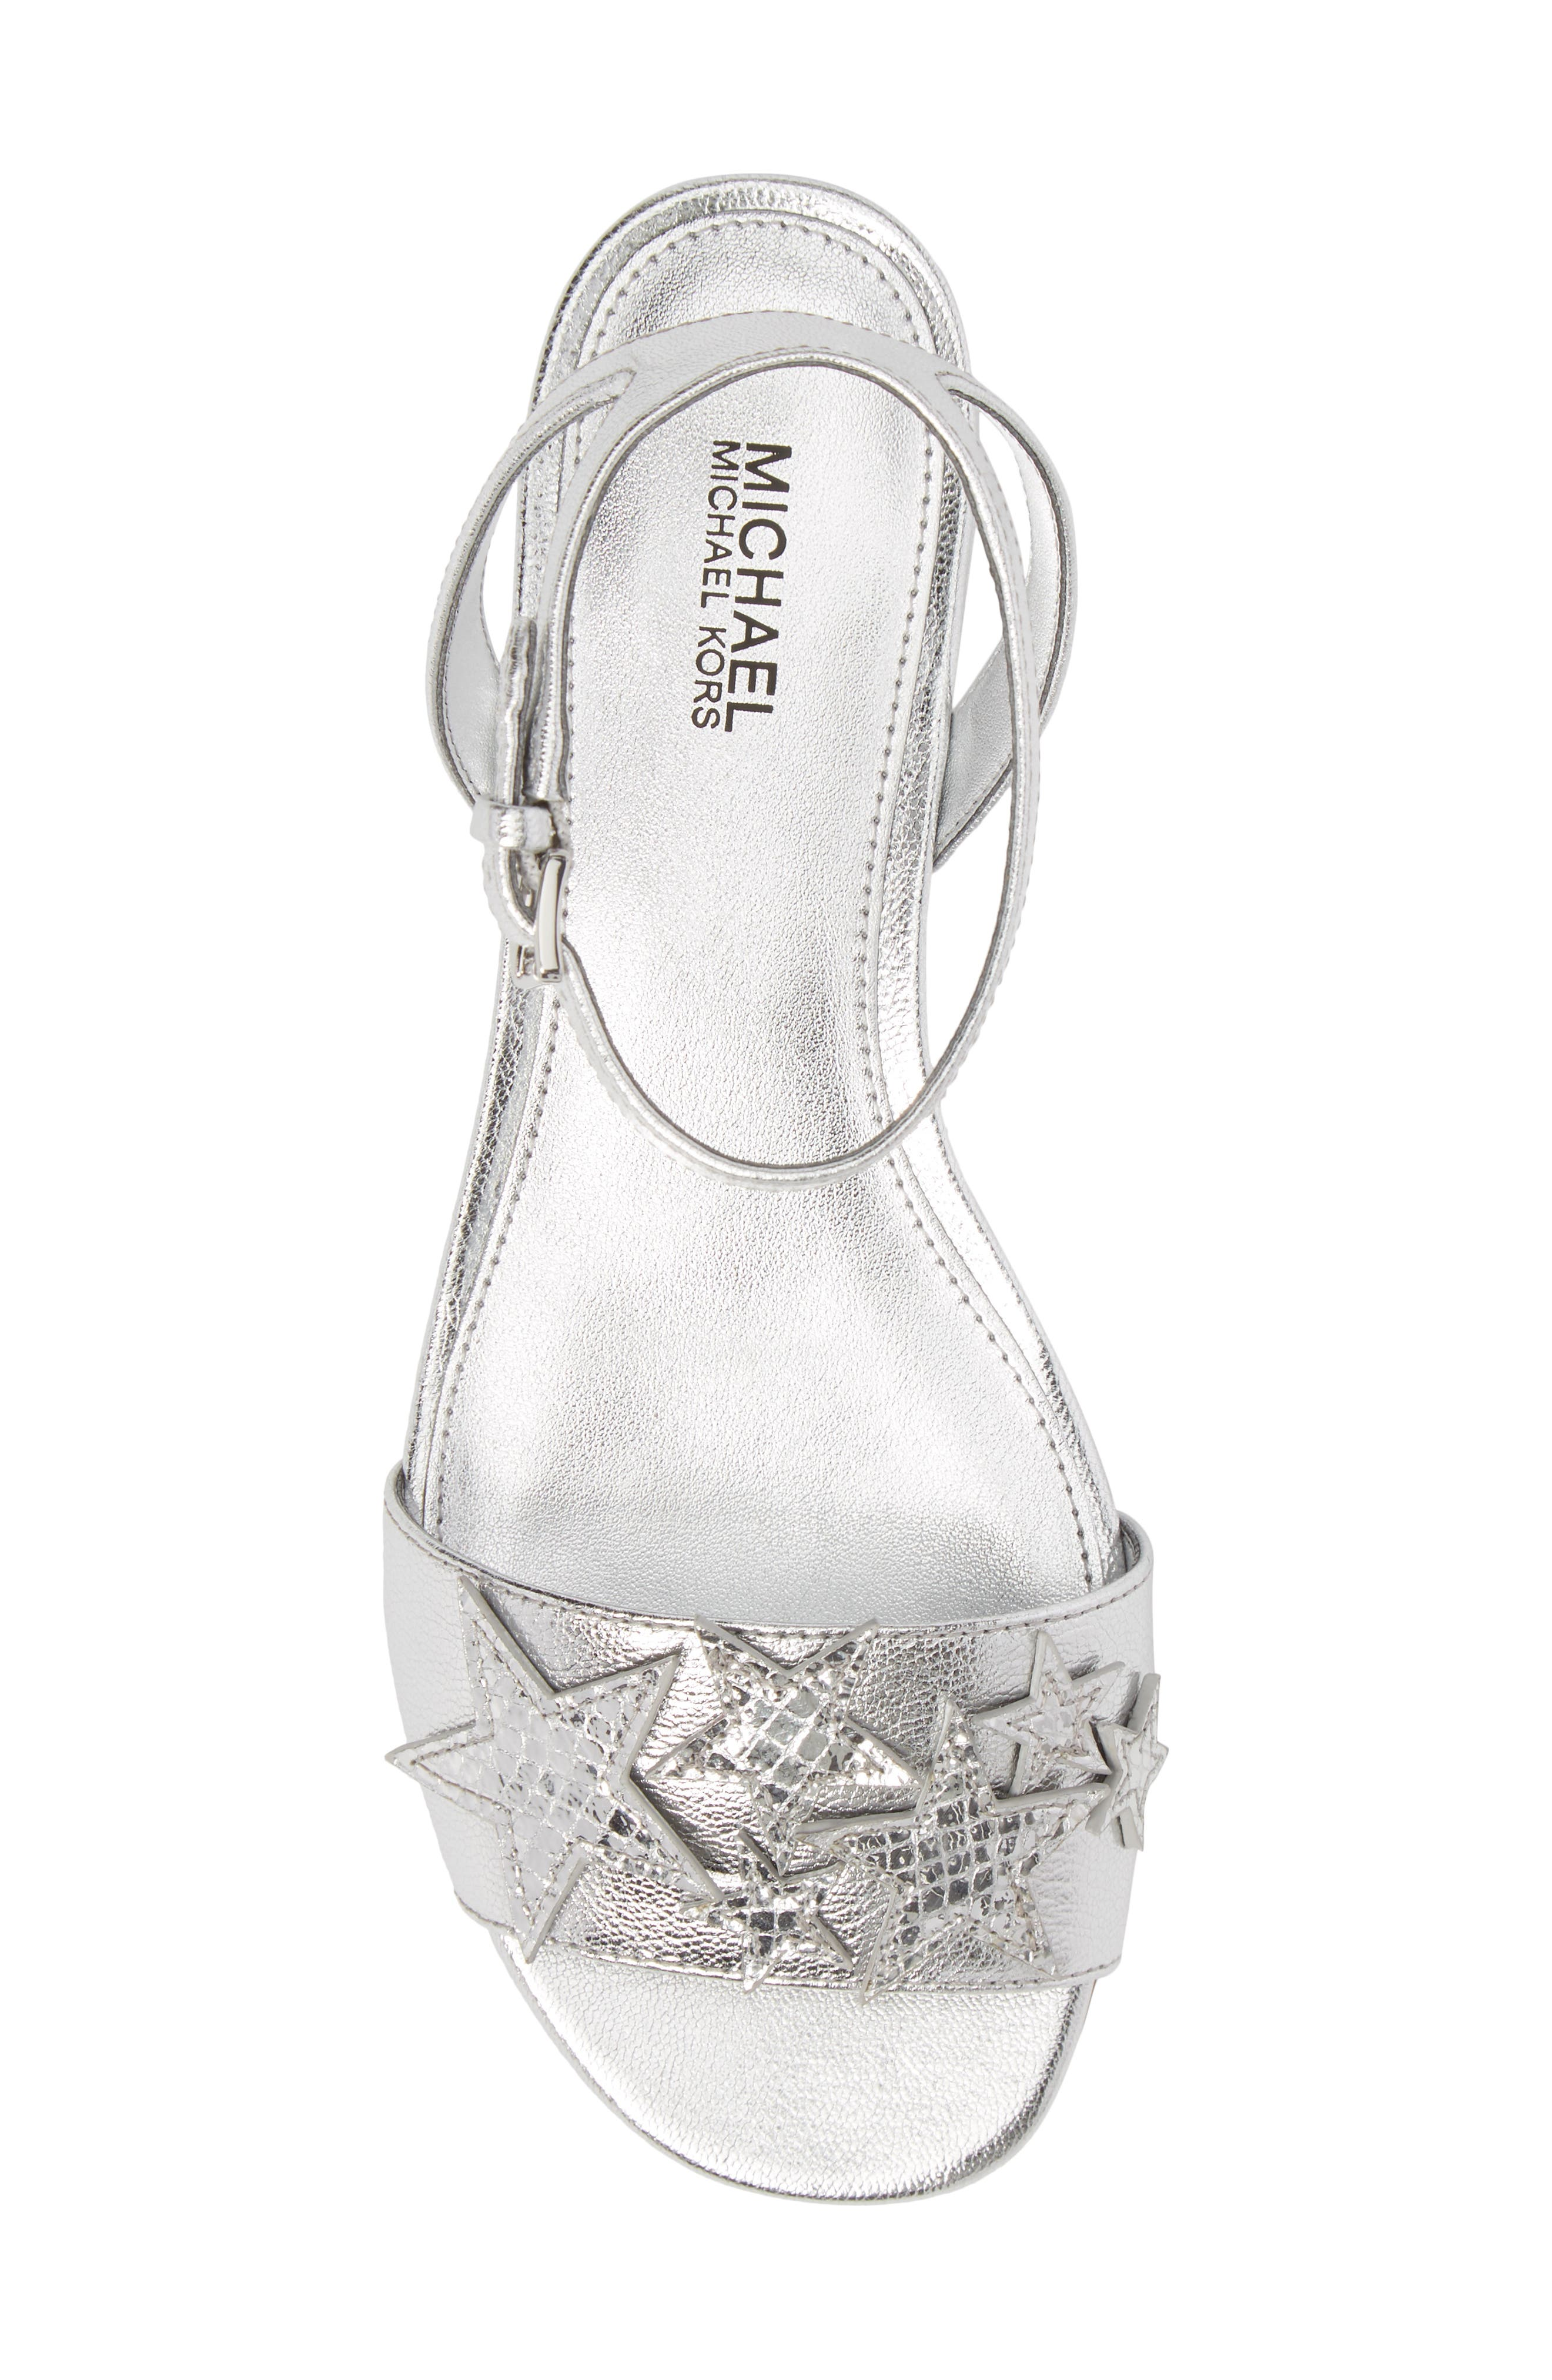 Lexie Star Embellished Sandal,                             Alternate thumbnail 5, color,                             Silver Nappa Leather